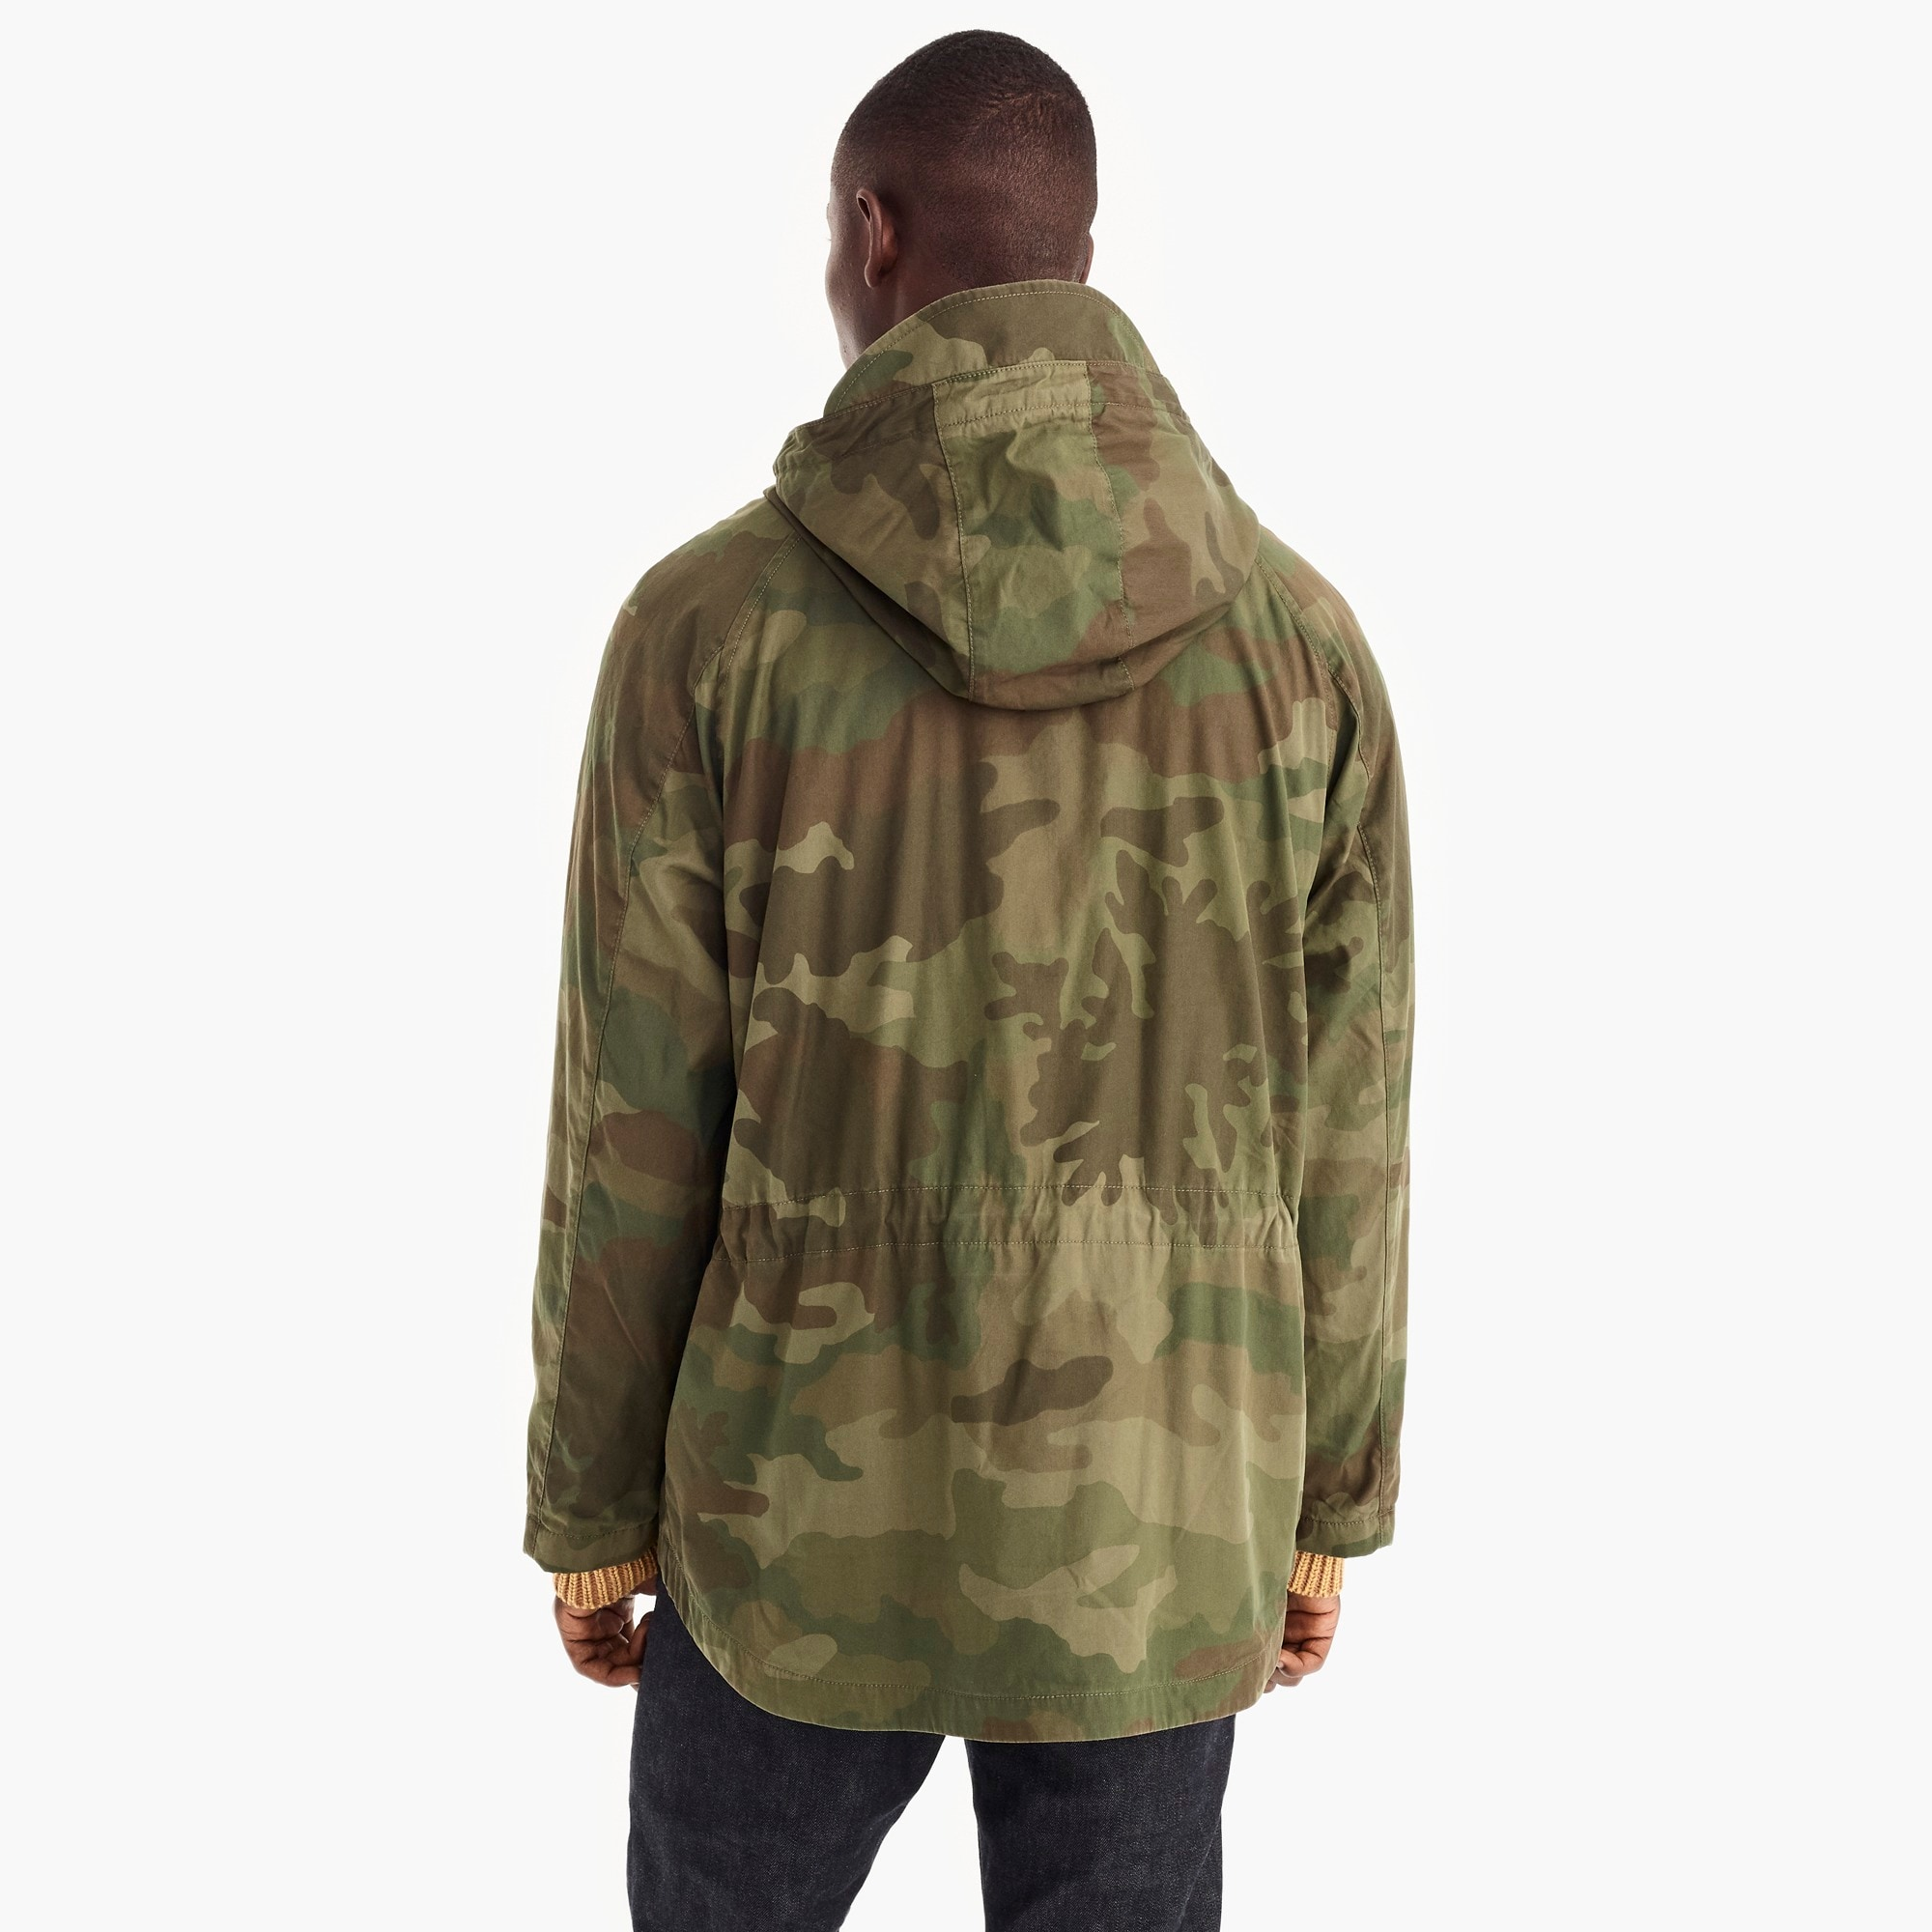 Image 3 for Cotton-nylon hooded jacket in camo